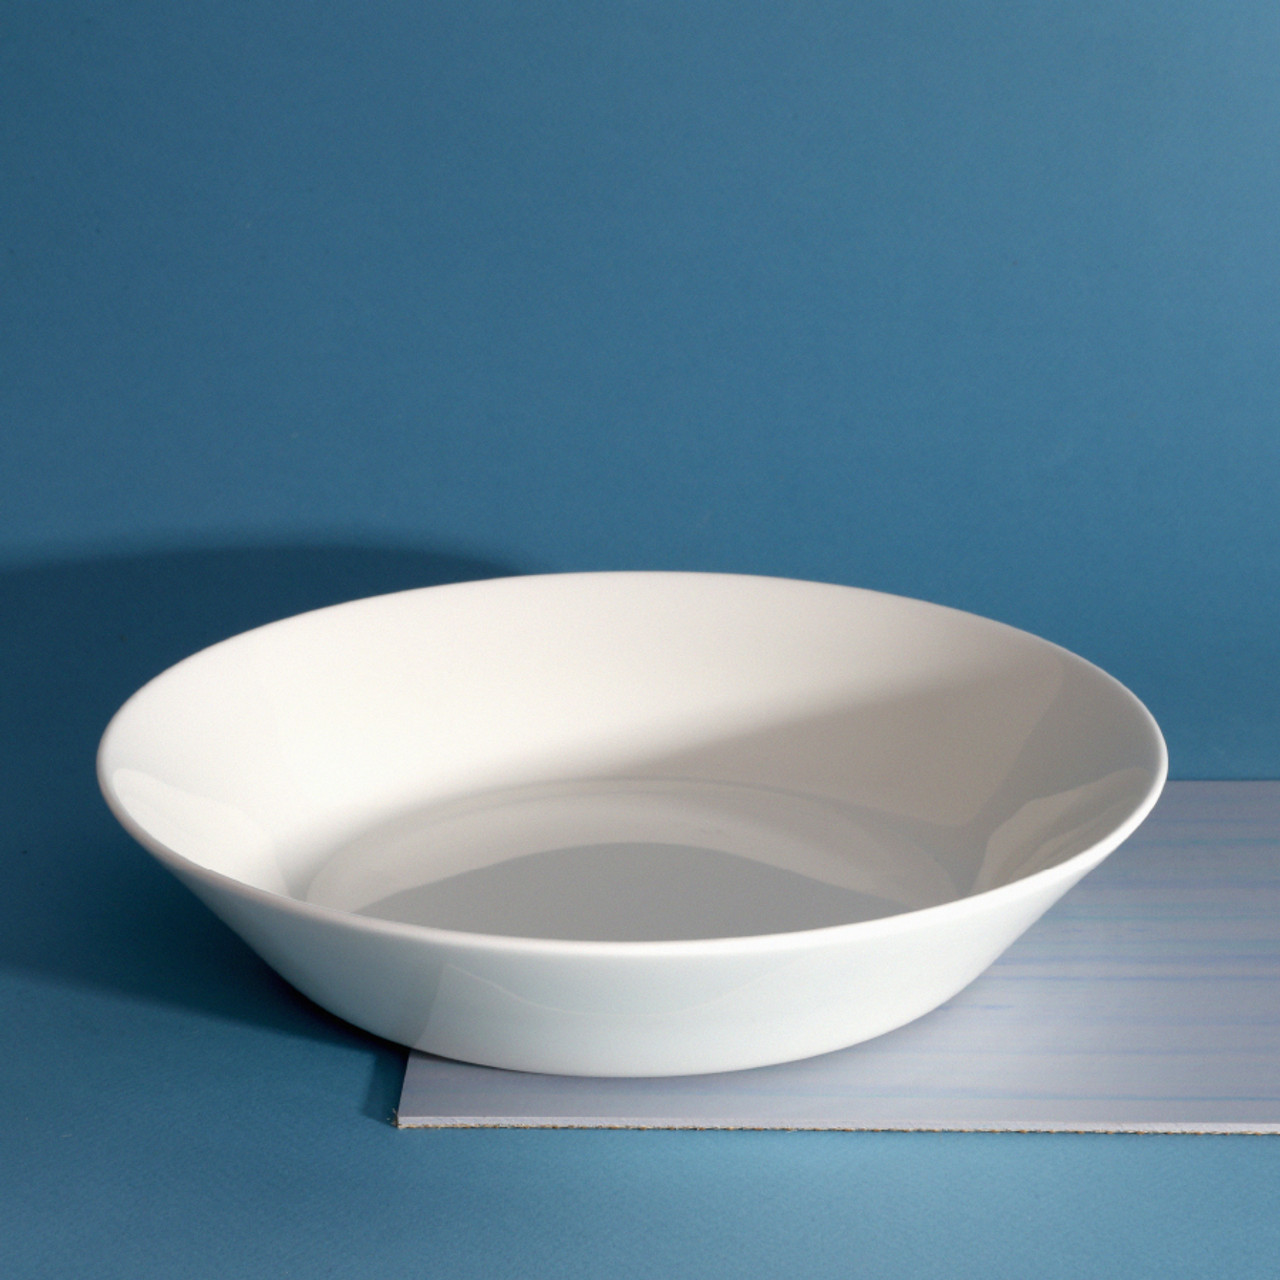 Lotus - Pasta Bowl 4 piece set